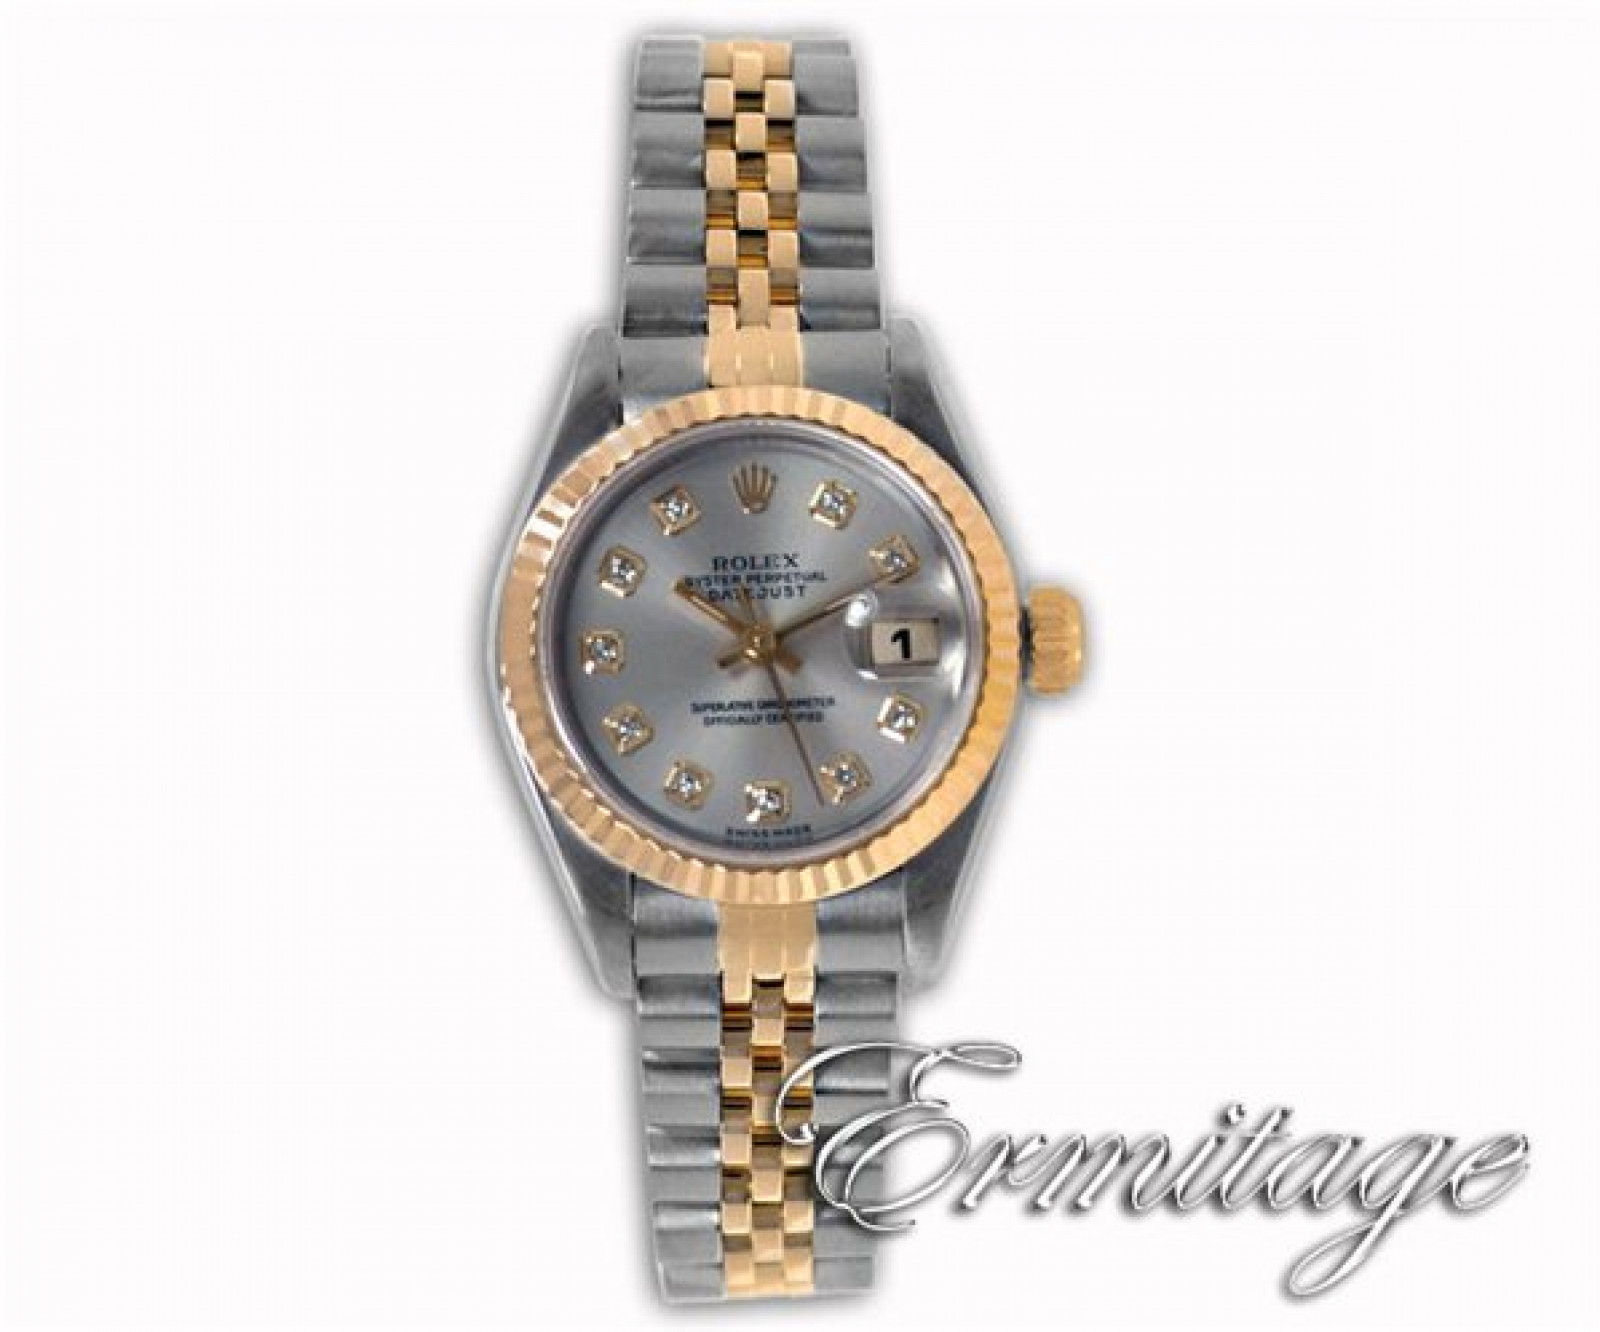 Rolex Datejust 69173 with Diamonds on Silver Dial